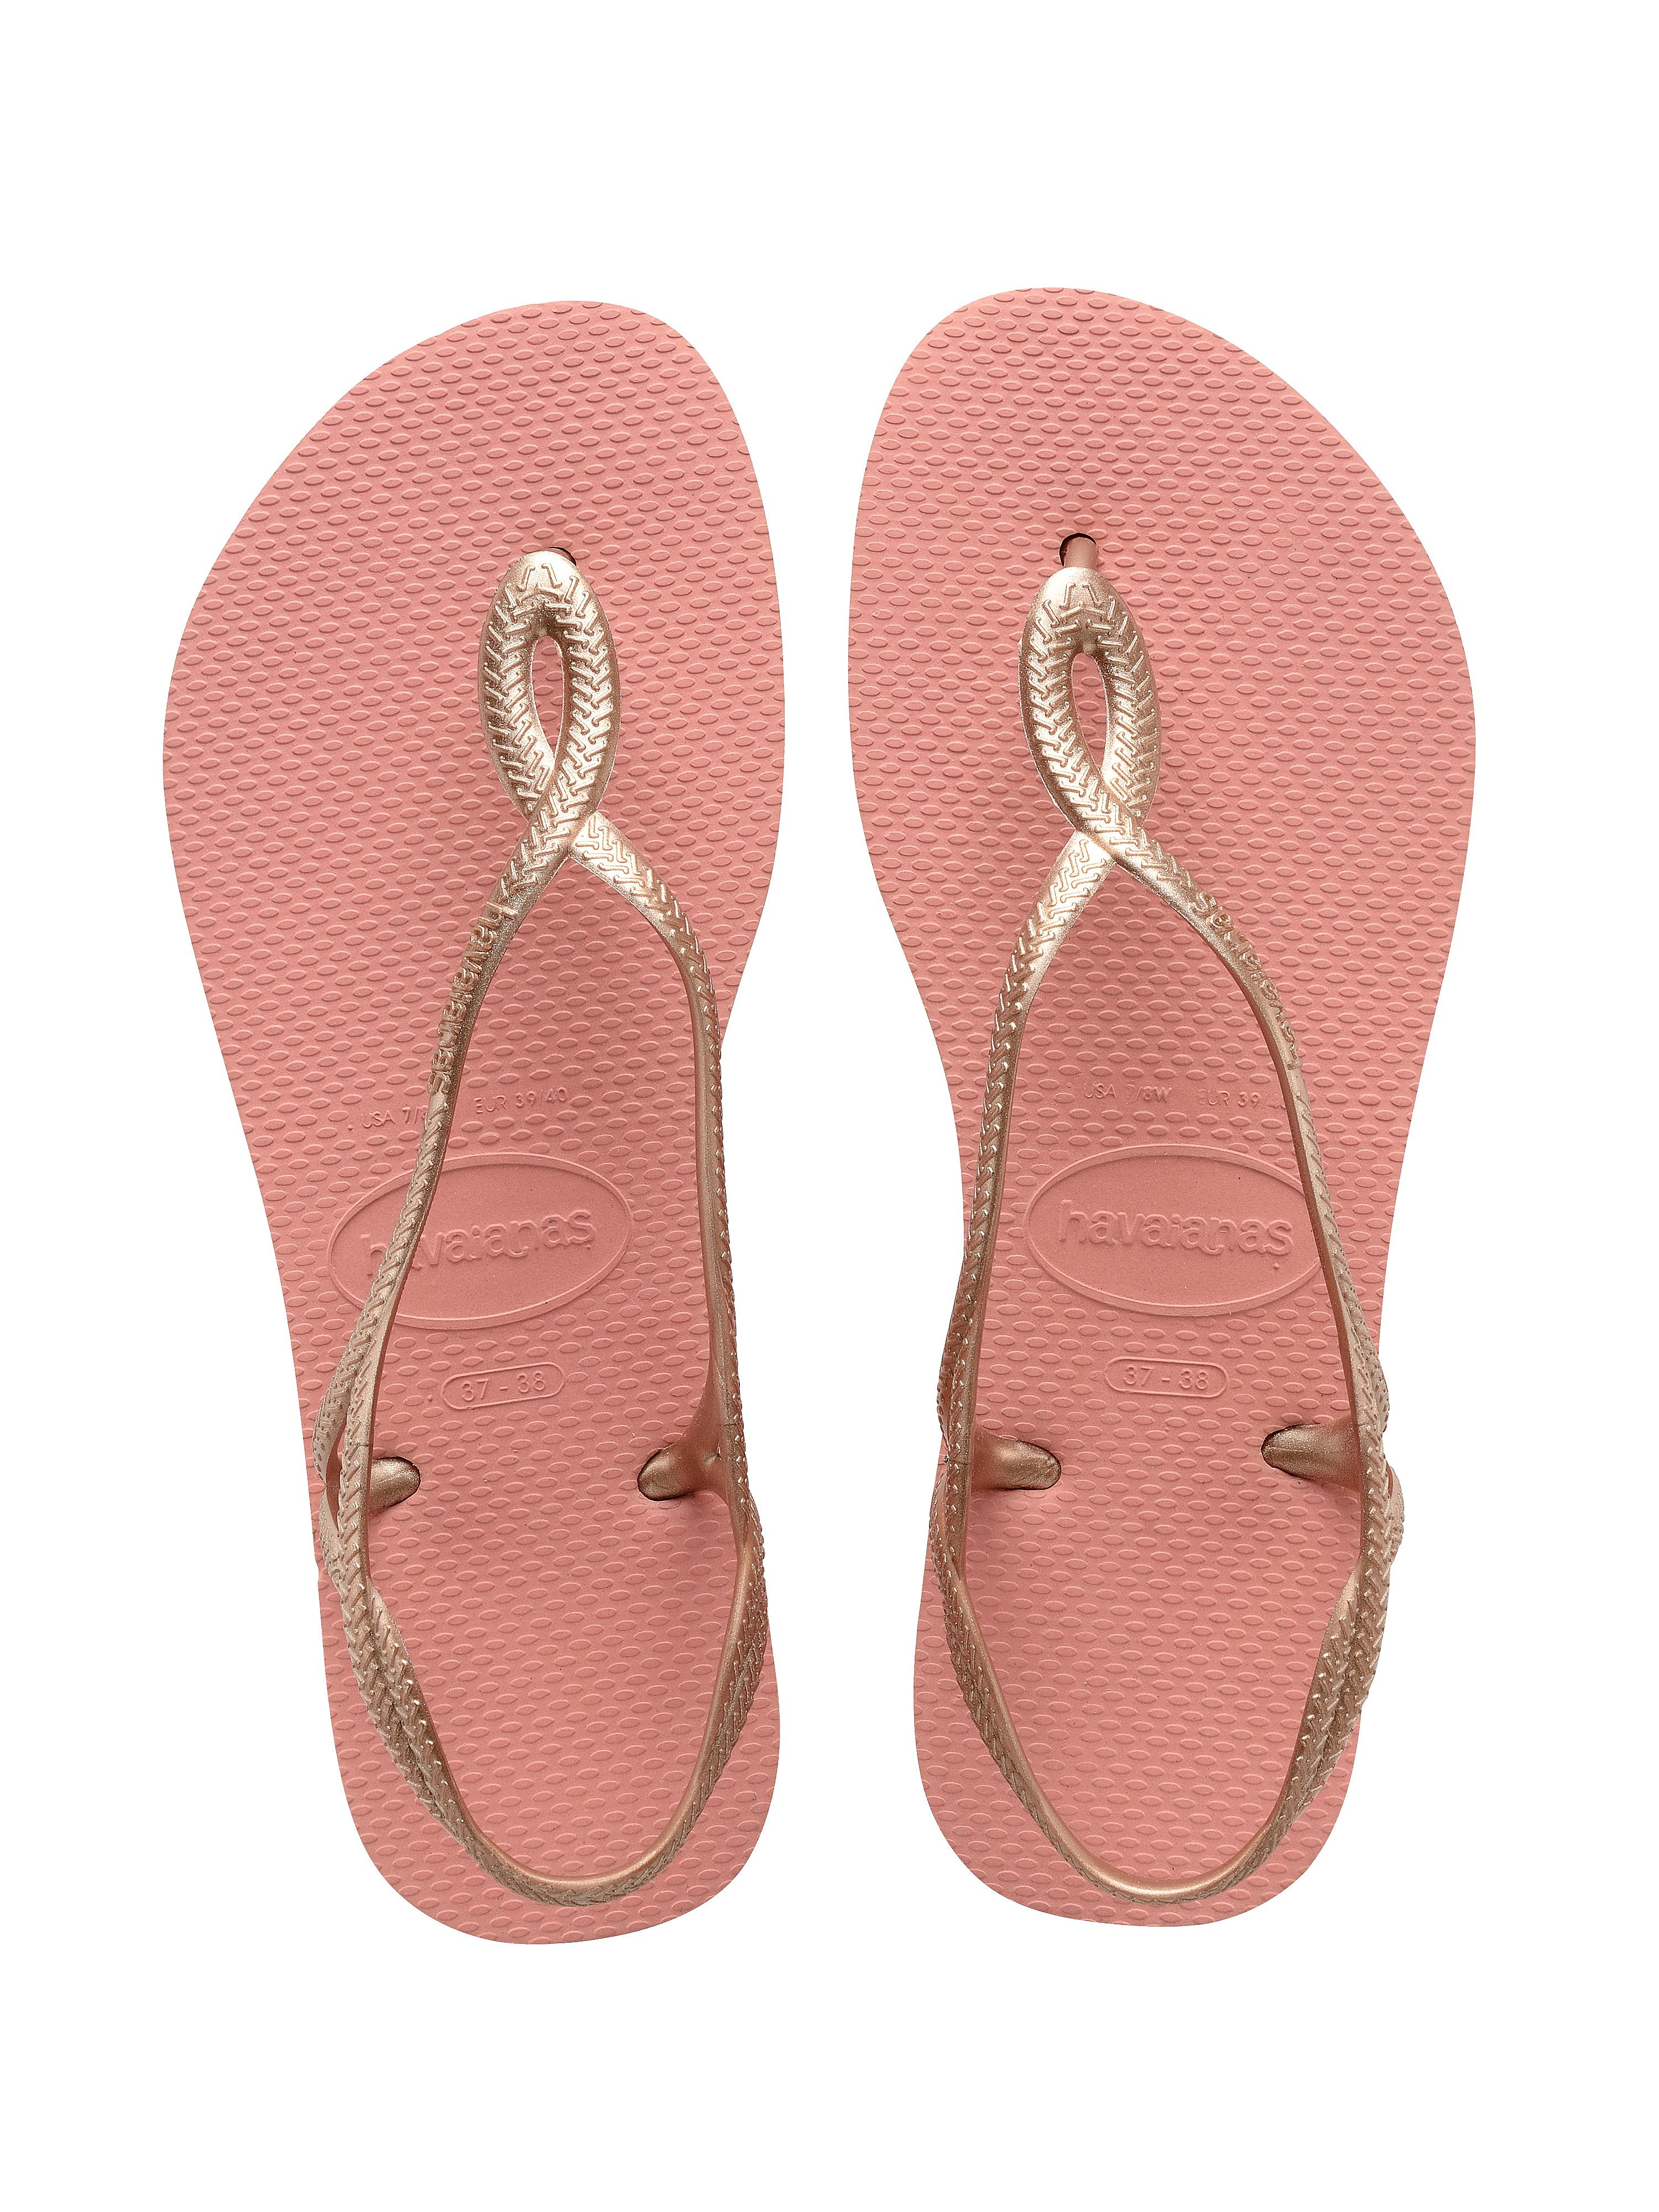 Havaianas Women's Luna Flip Flops - Light Rose